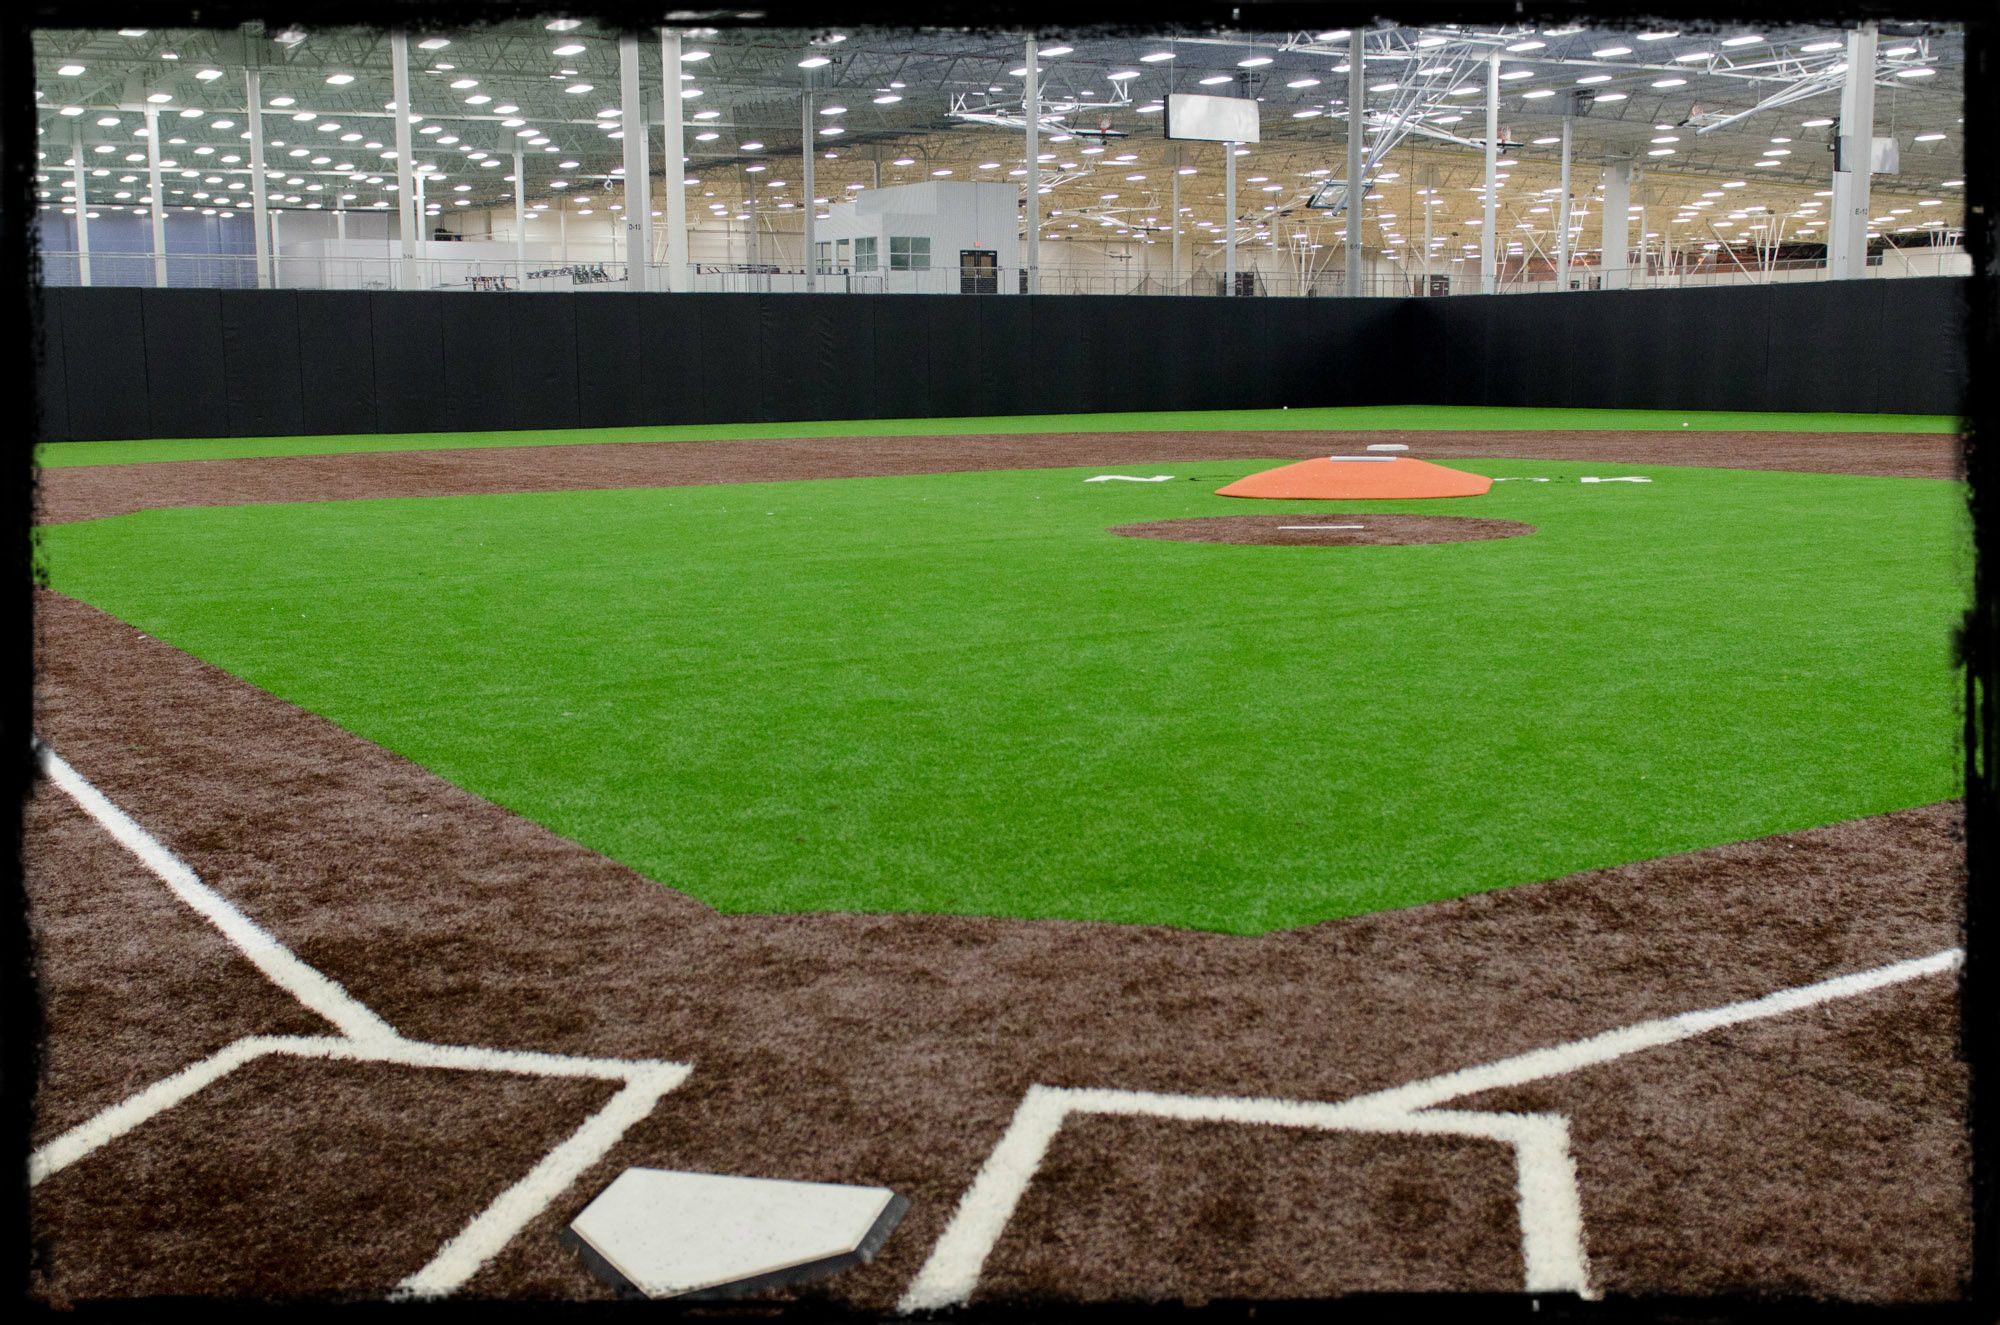 Spooky Nook Sports Indoor Baseball Diamond Spooky Nook Sports Spooky Nook Baseball Diamond